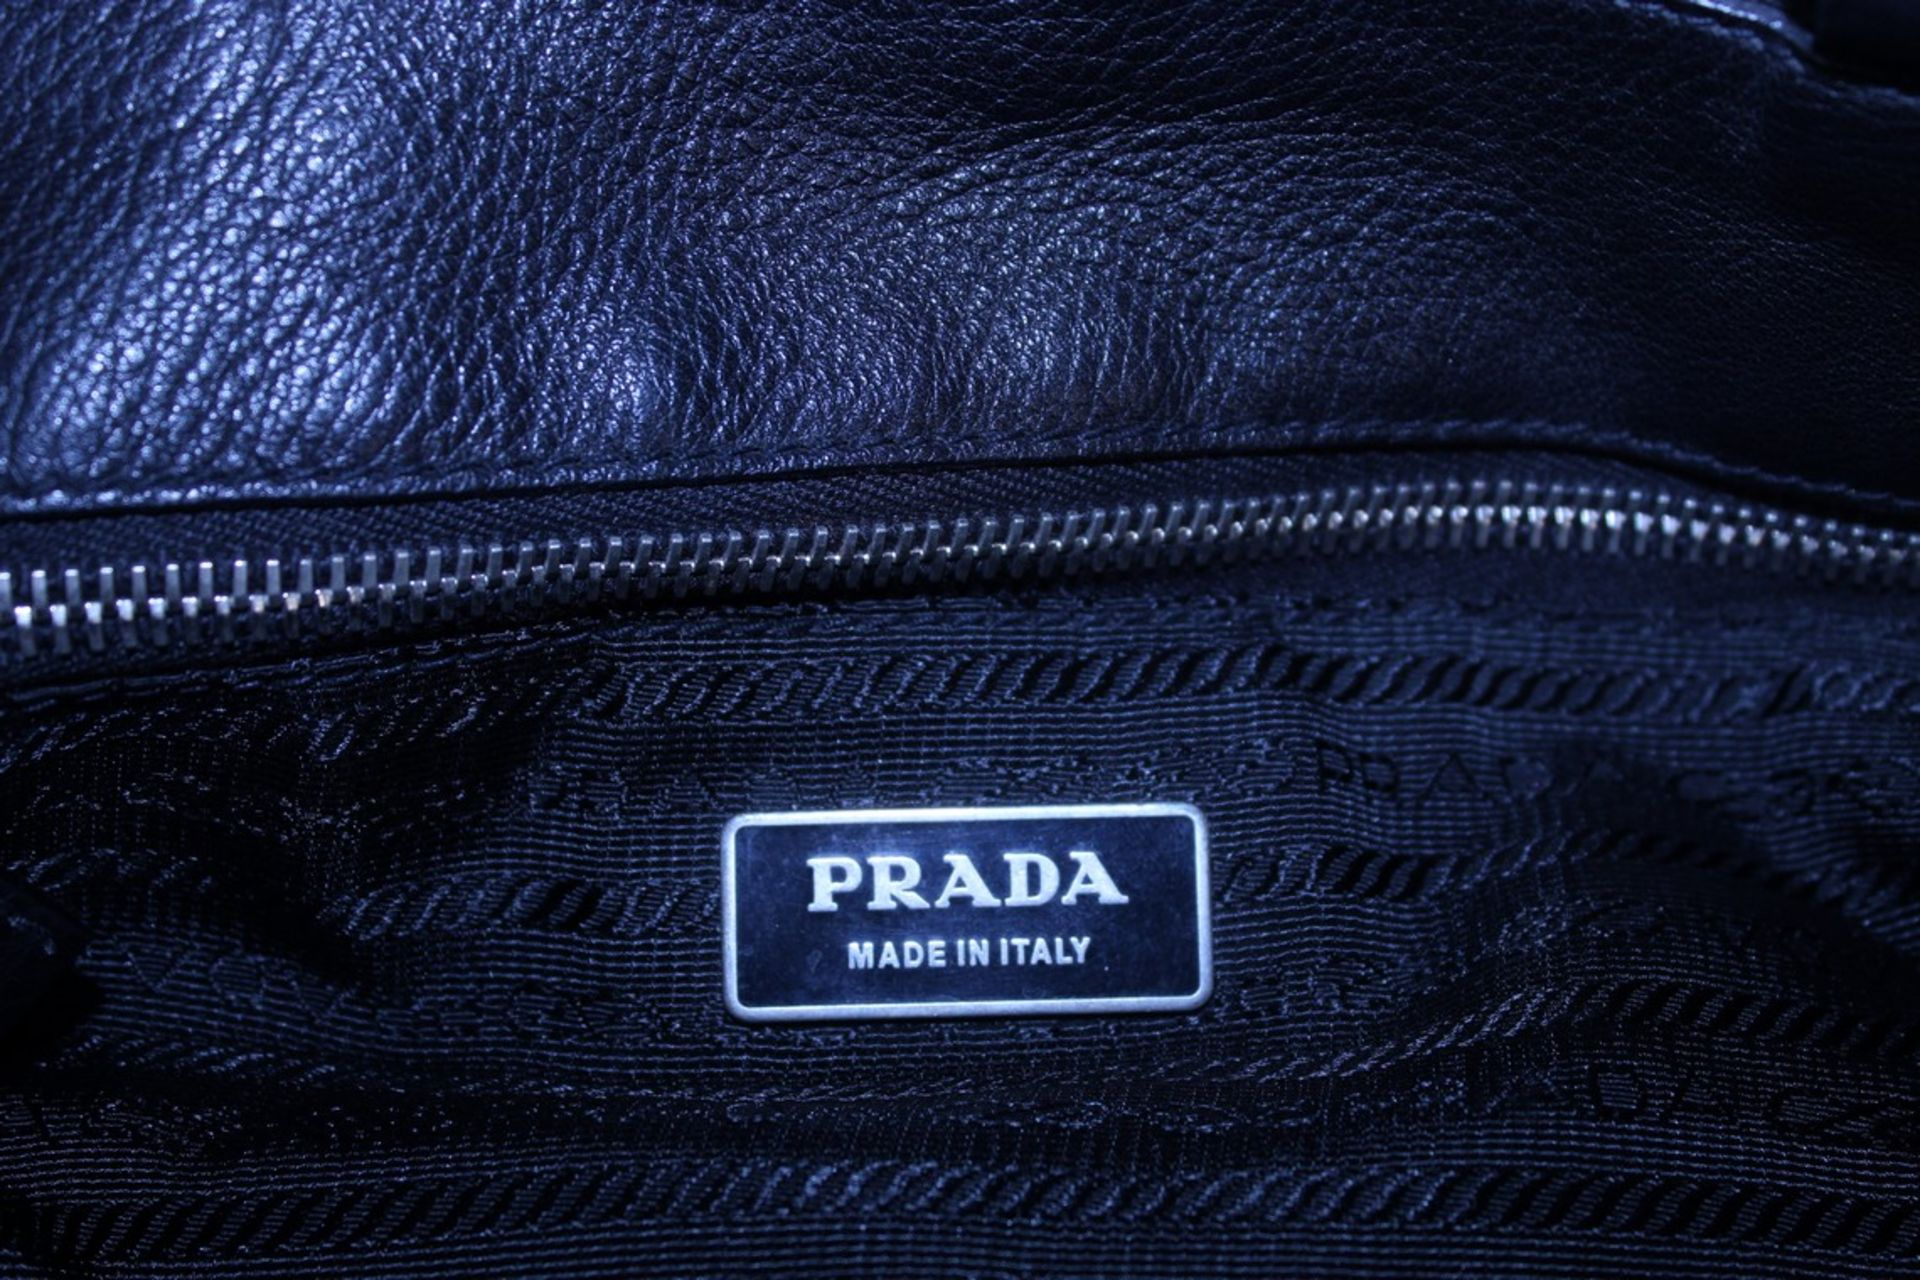 RRP £1200 Prada Side Pocket Tote Shoulder Bag In Black Small Grained Leather With Black Leather - Image 3 of 3